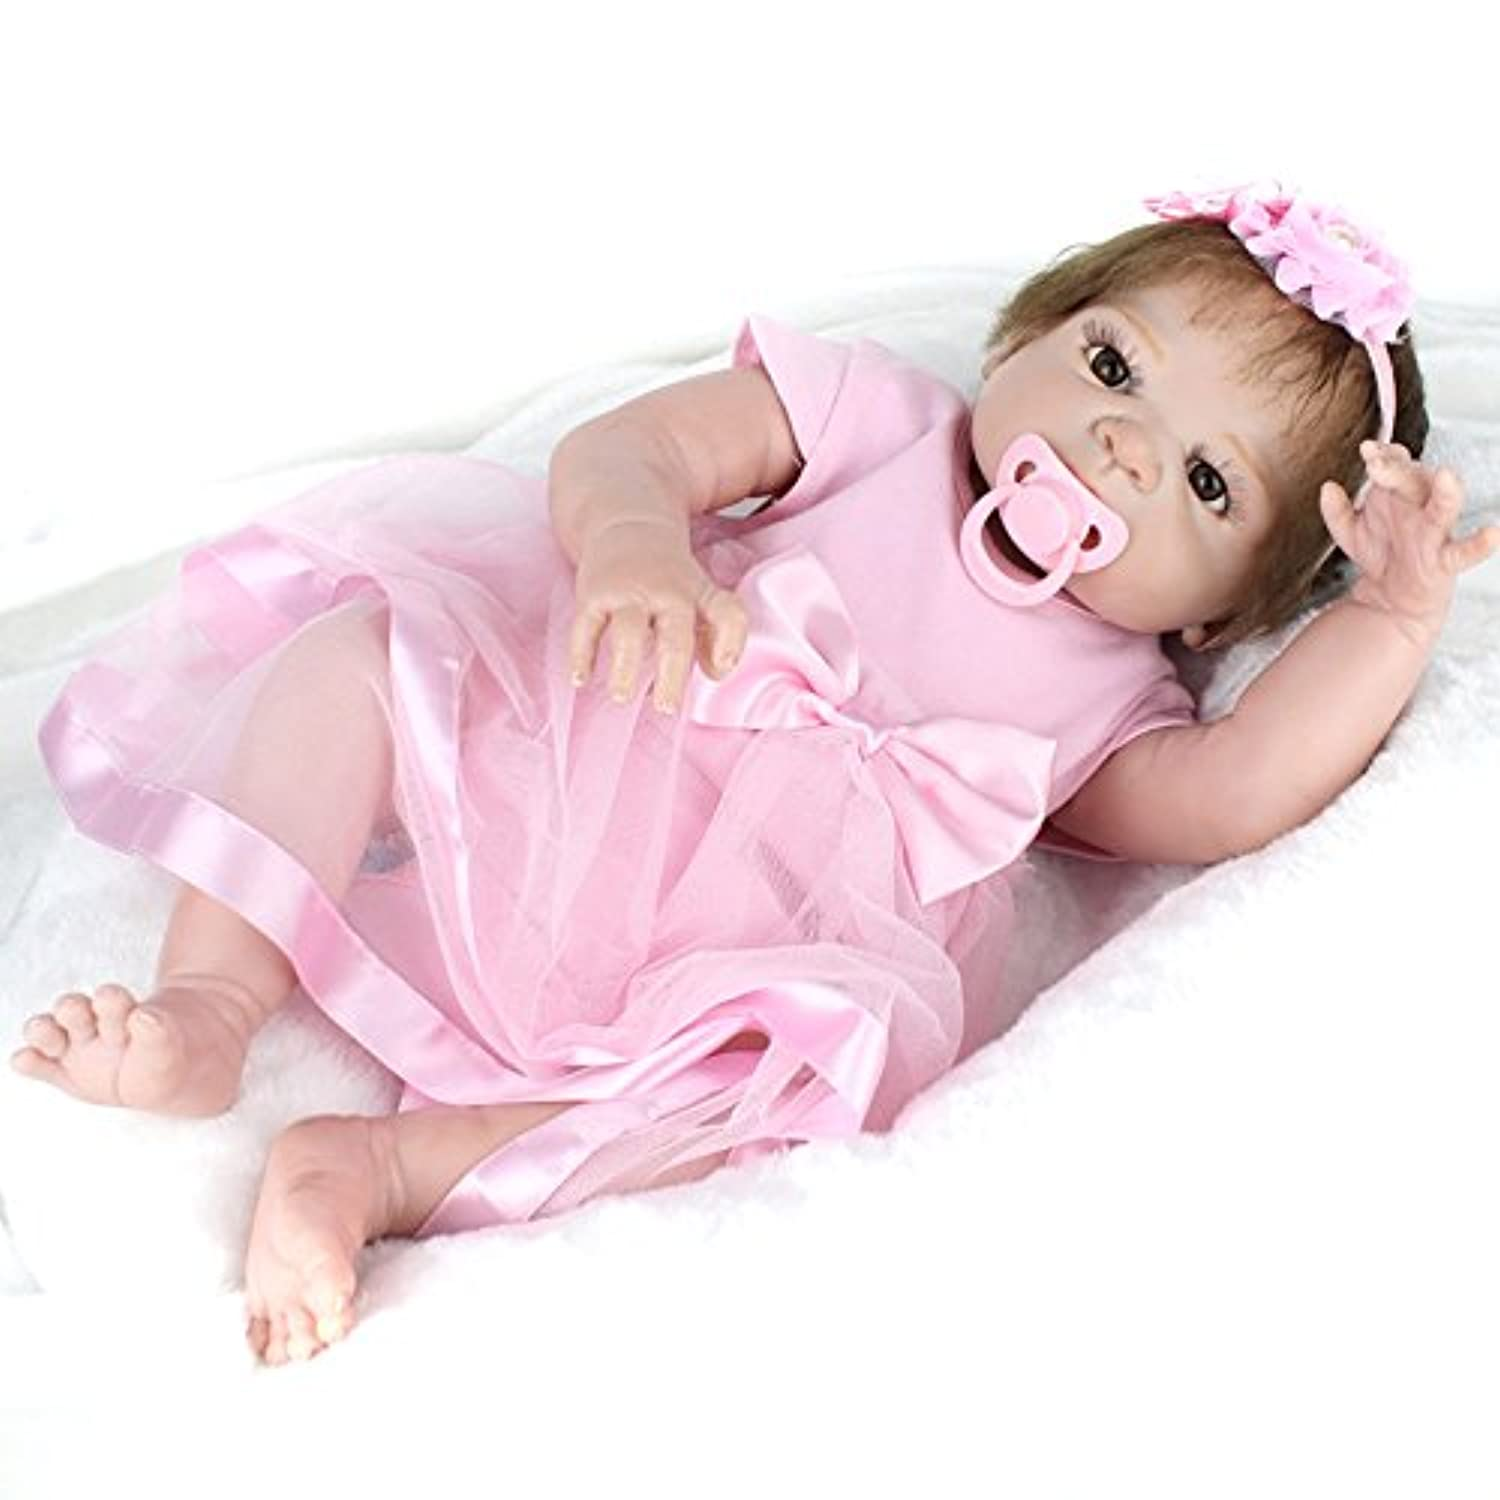 フルシリコン赤ちゃんベビー人形Reborn Girls 22インチWashable with Hair Sleeping Toys for Kids